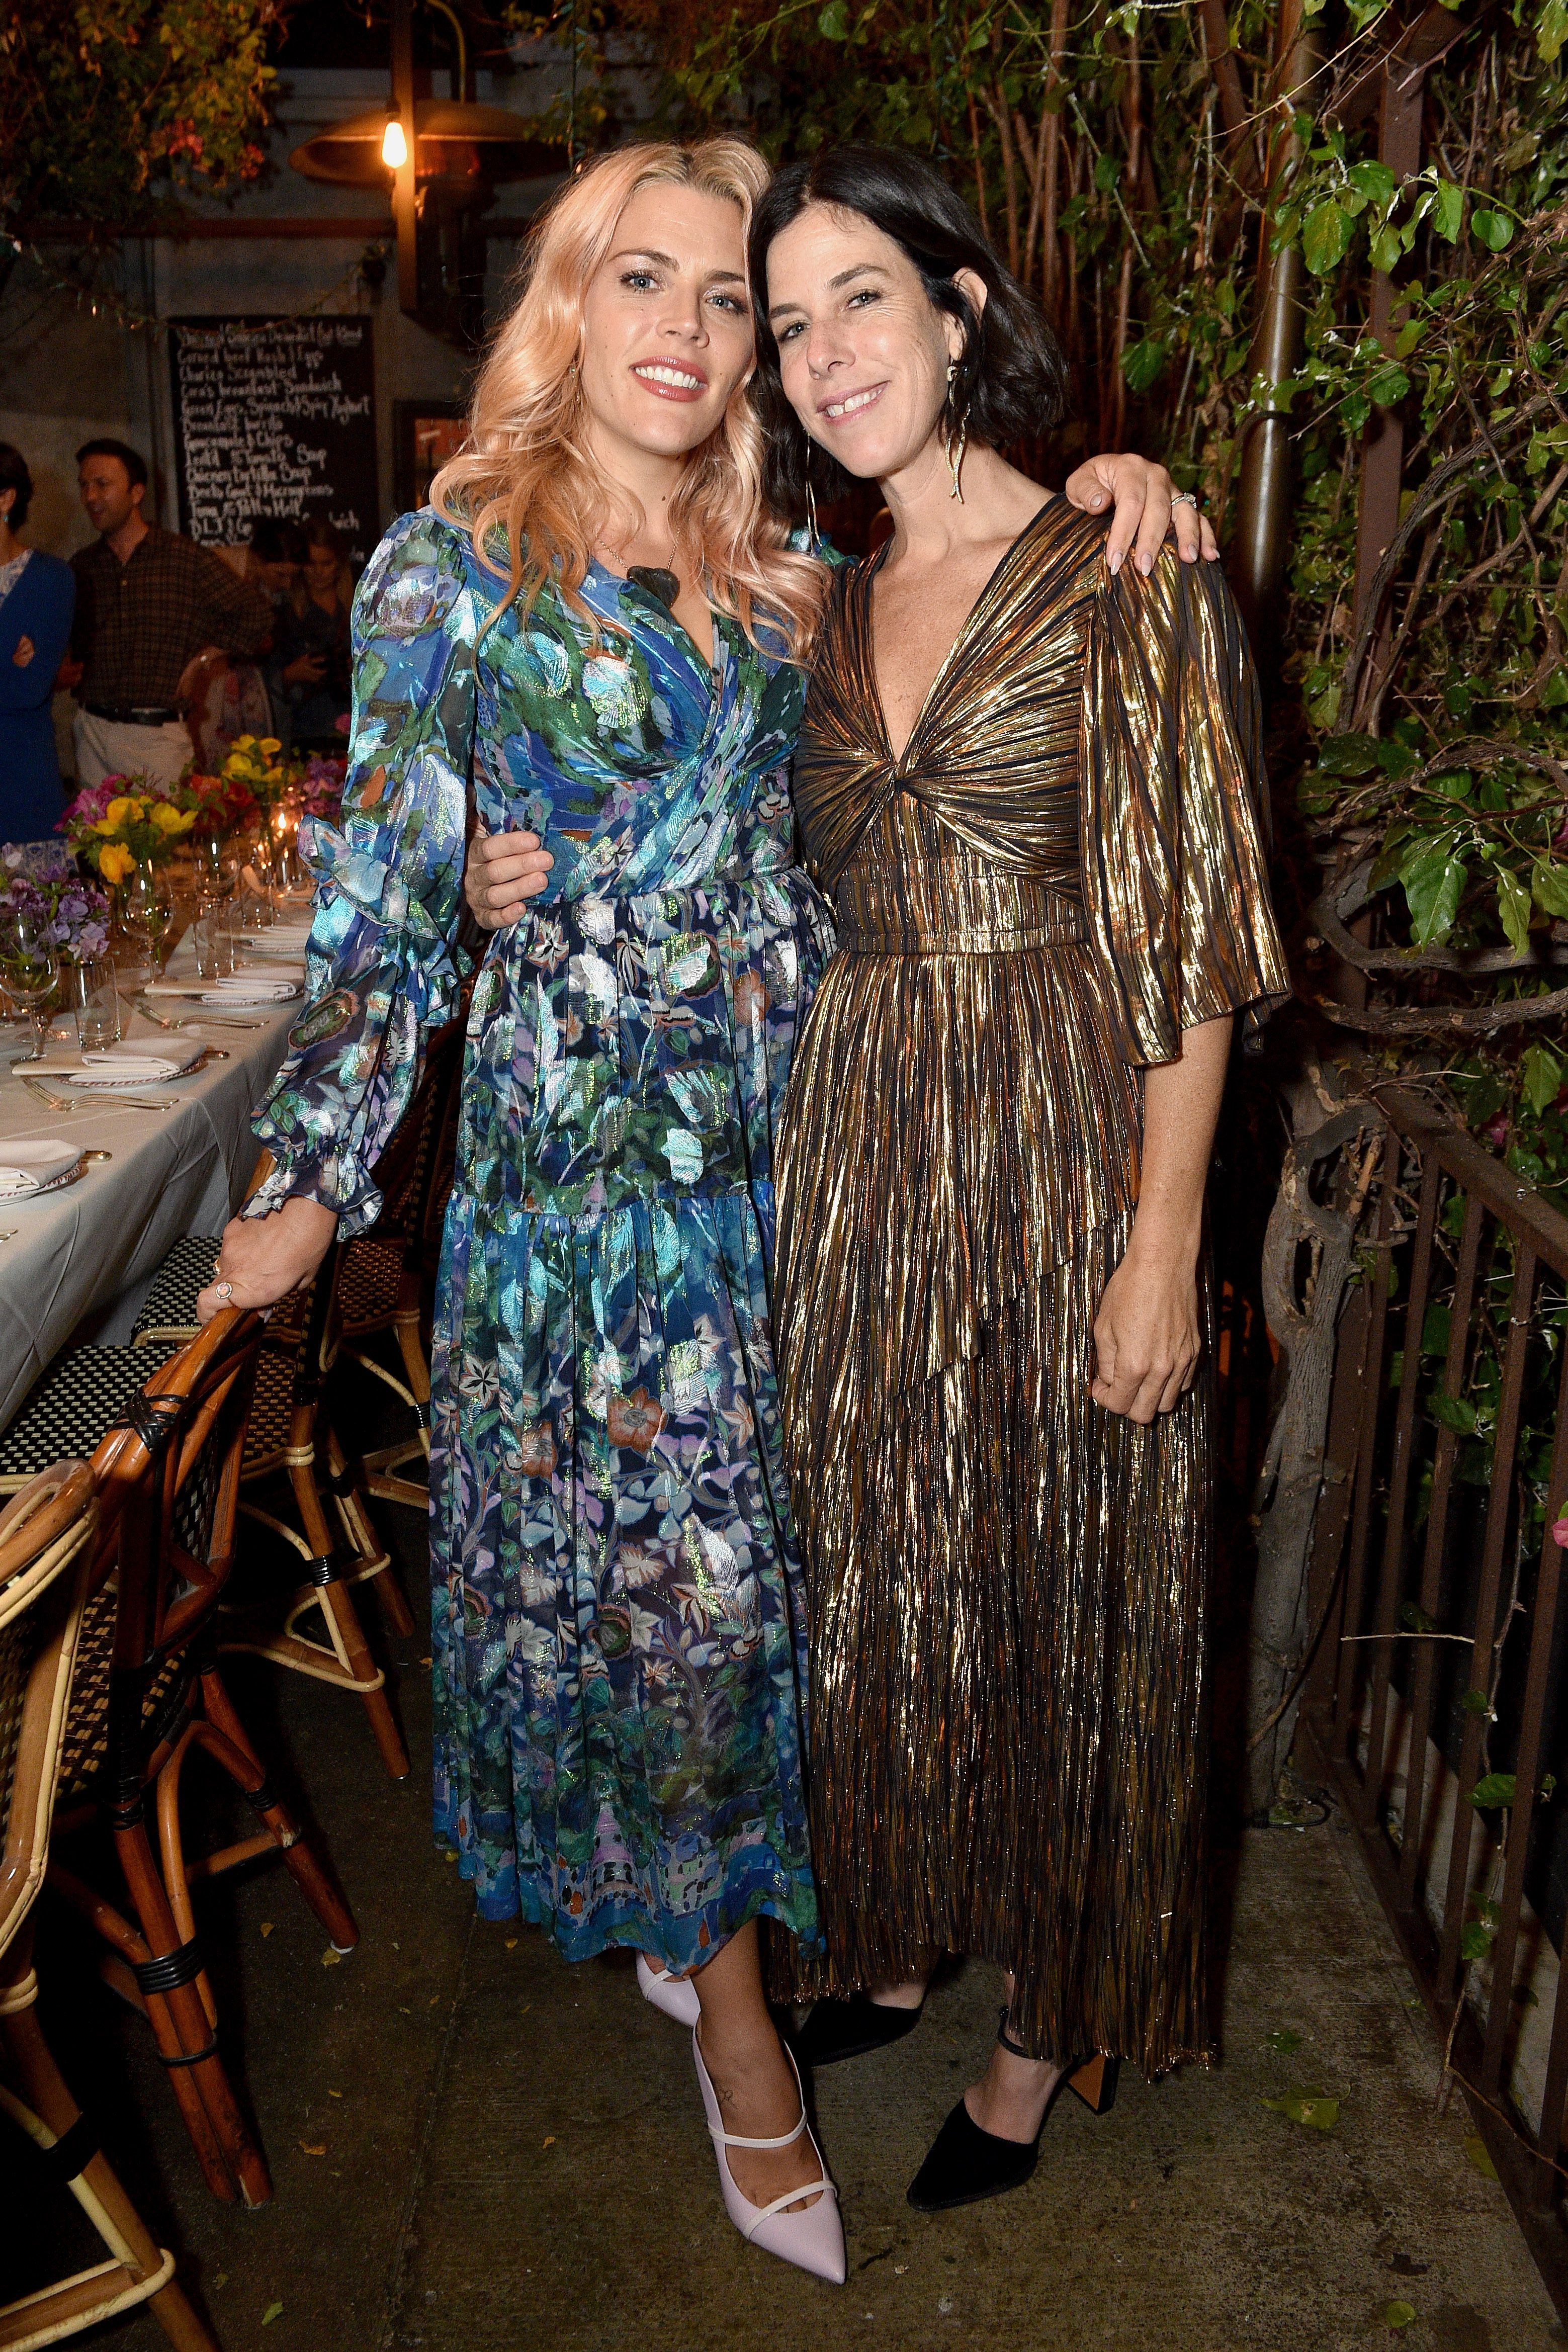 Irene Neuwirth and Busy PhilippsIntimate dinner following the Capitol & Irene Neuwirth Brentwood store opening, Los Angeles, USA - 25 Apr 2019